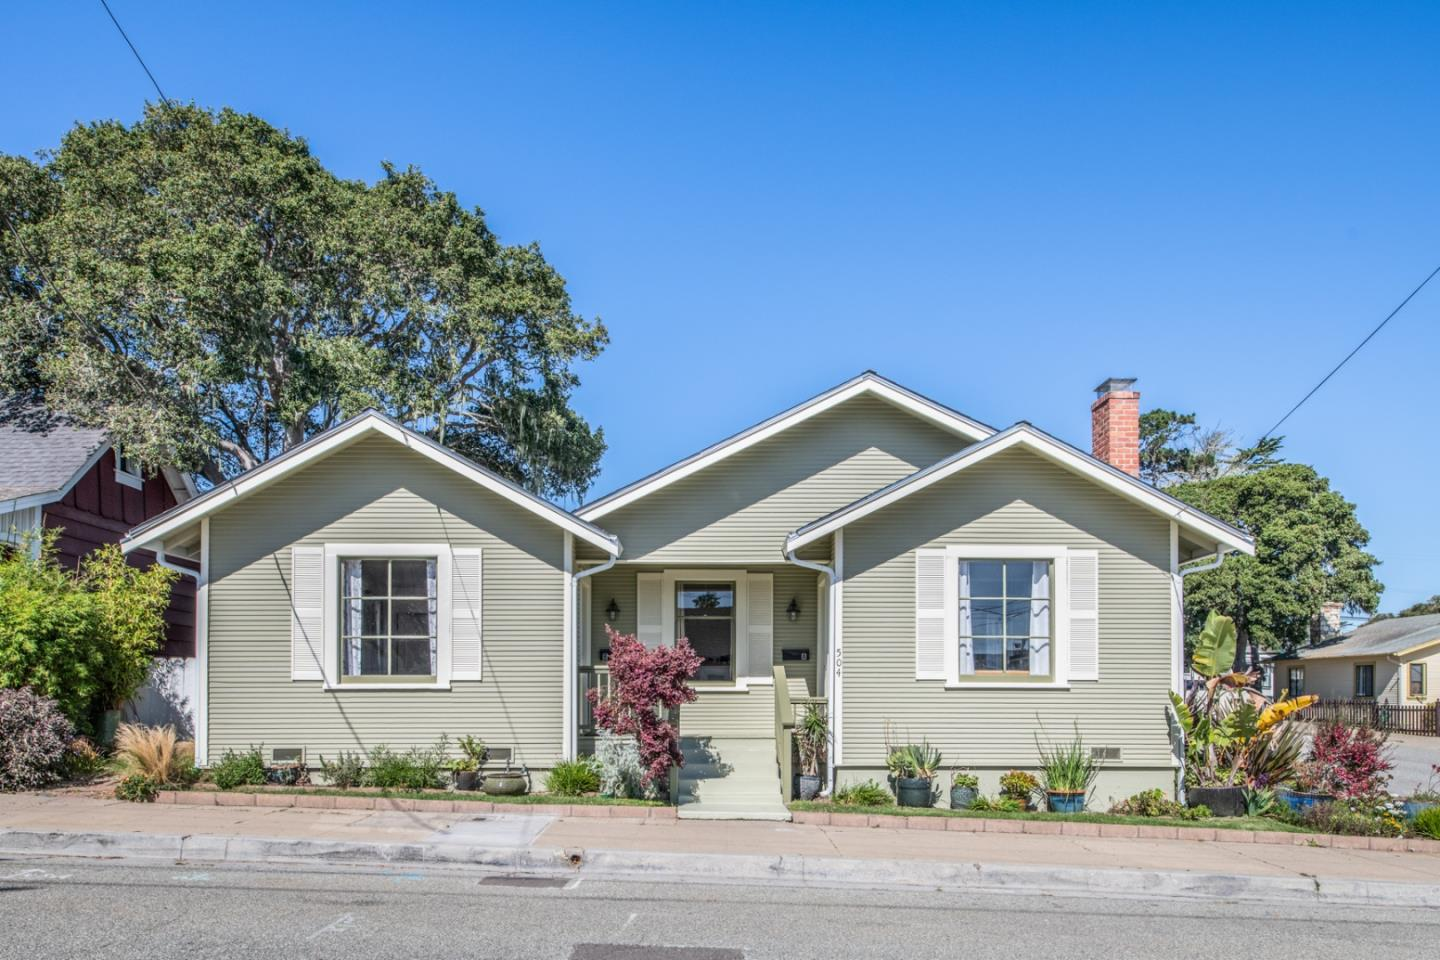 Detail Gallery Image 1 of 1 For 504 19th St, Pacific Grove,  CA 93950 - – Beds | – Baths